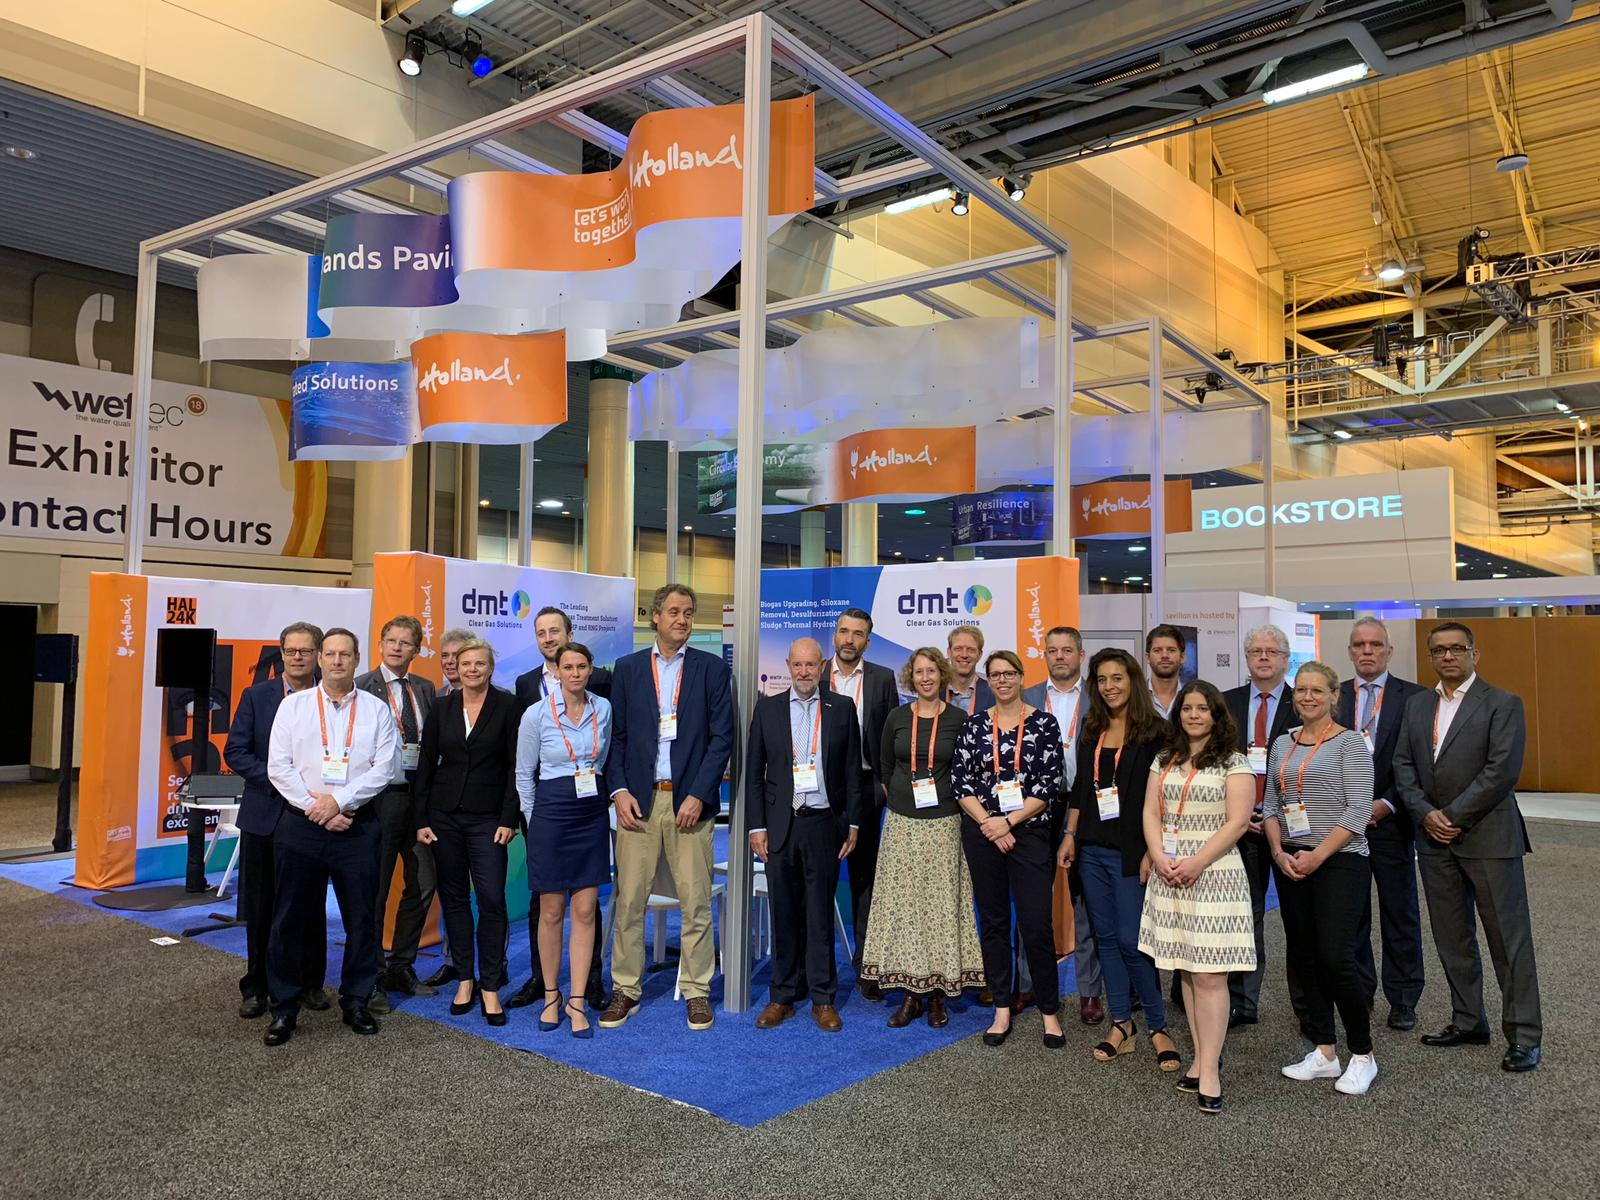 Dutch water expertise to be on display during WEFTEC